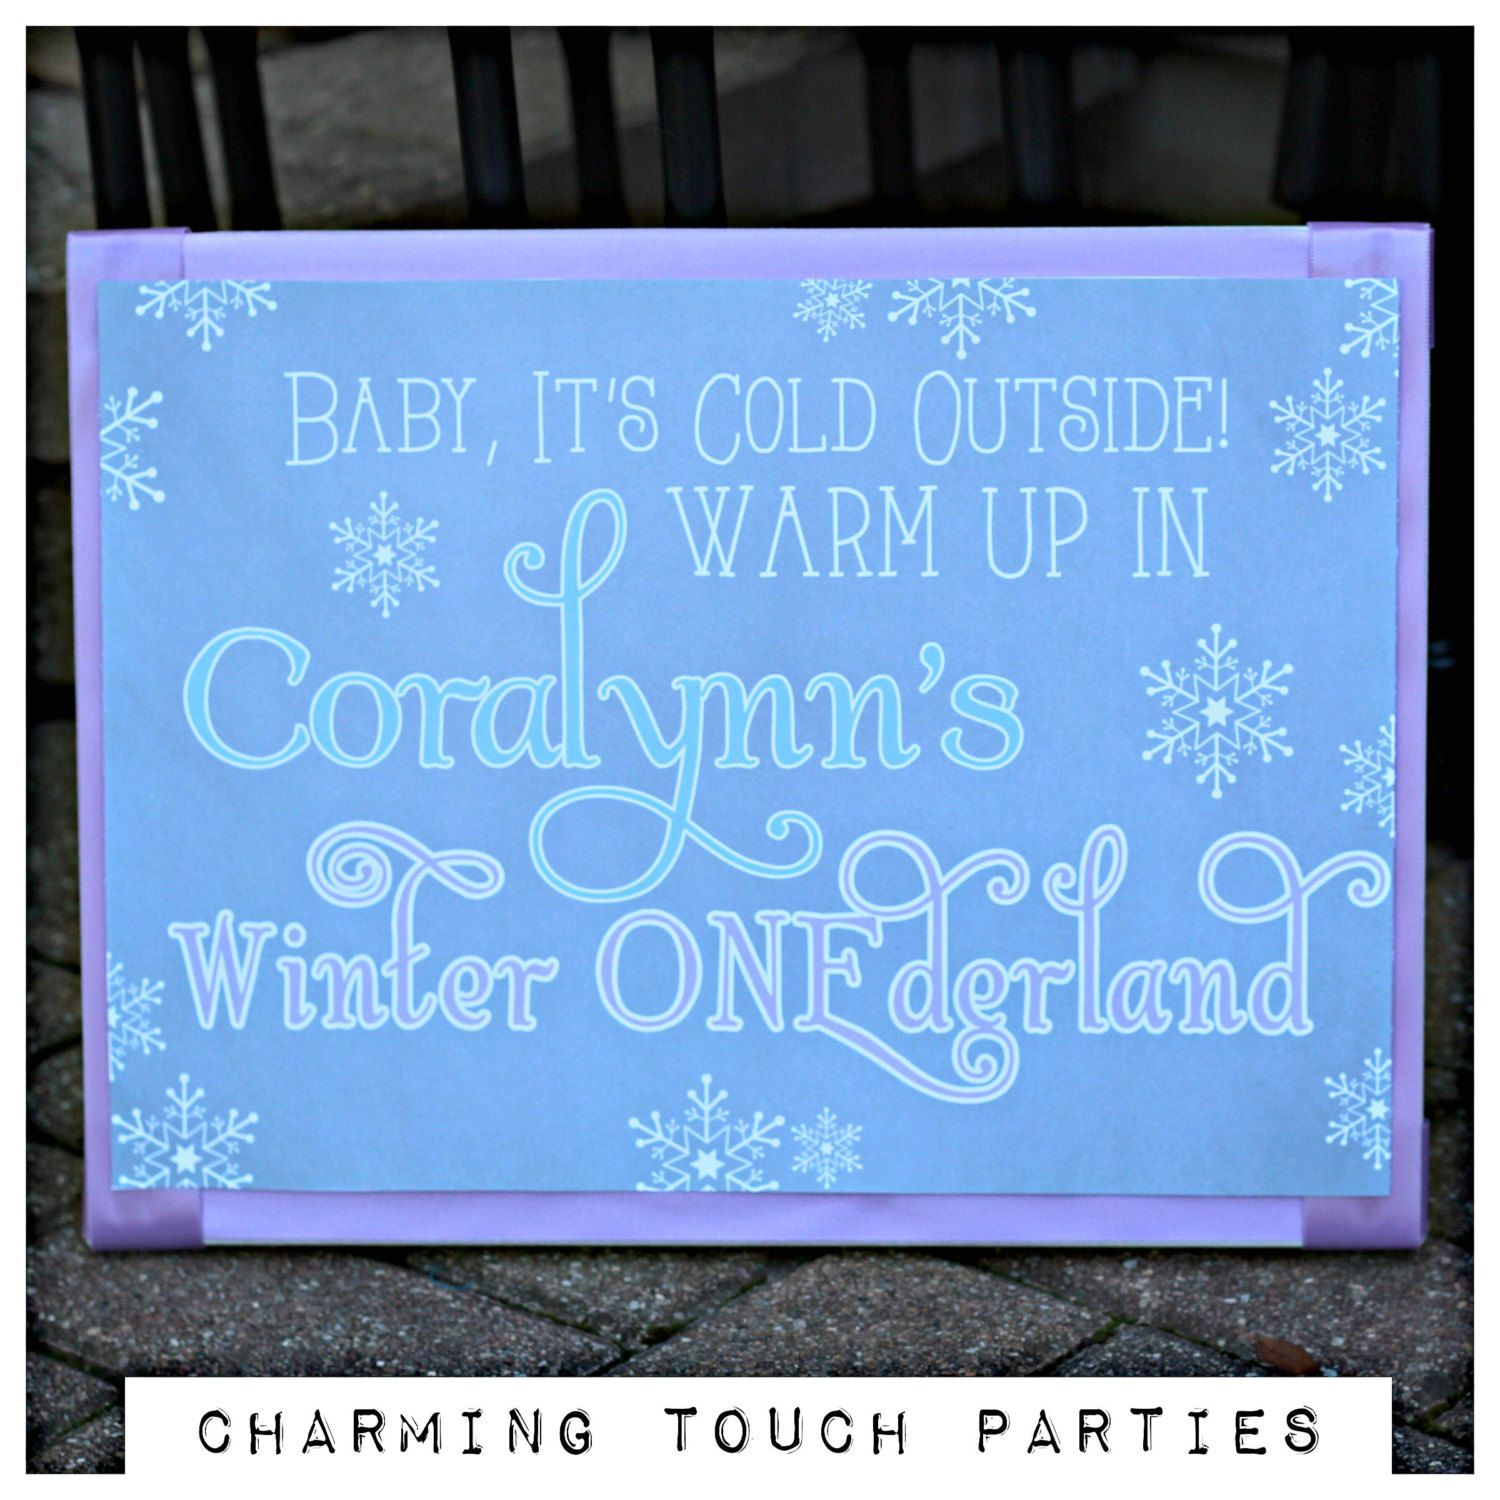 Winter Wonderland / ONEderland chalkboard style welcome sign by Charming Touch Parties.  11x17, professionally printed.  Customizable. by CharmingTouchParties on Etsy